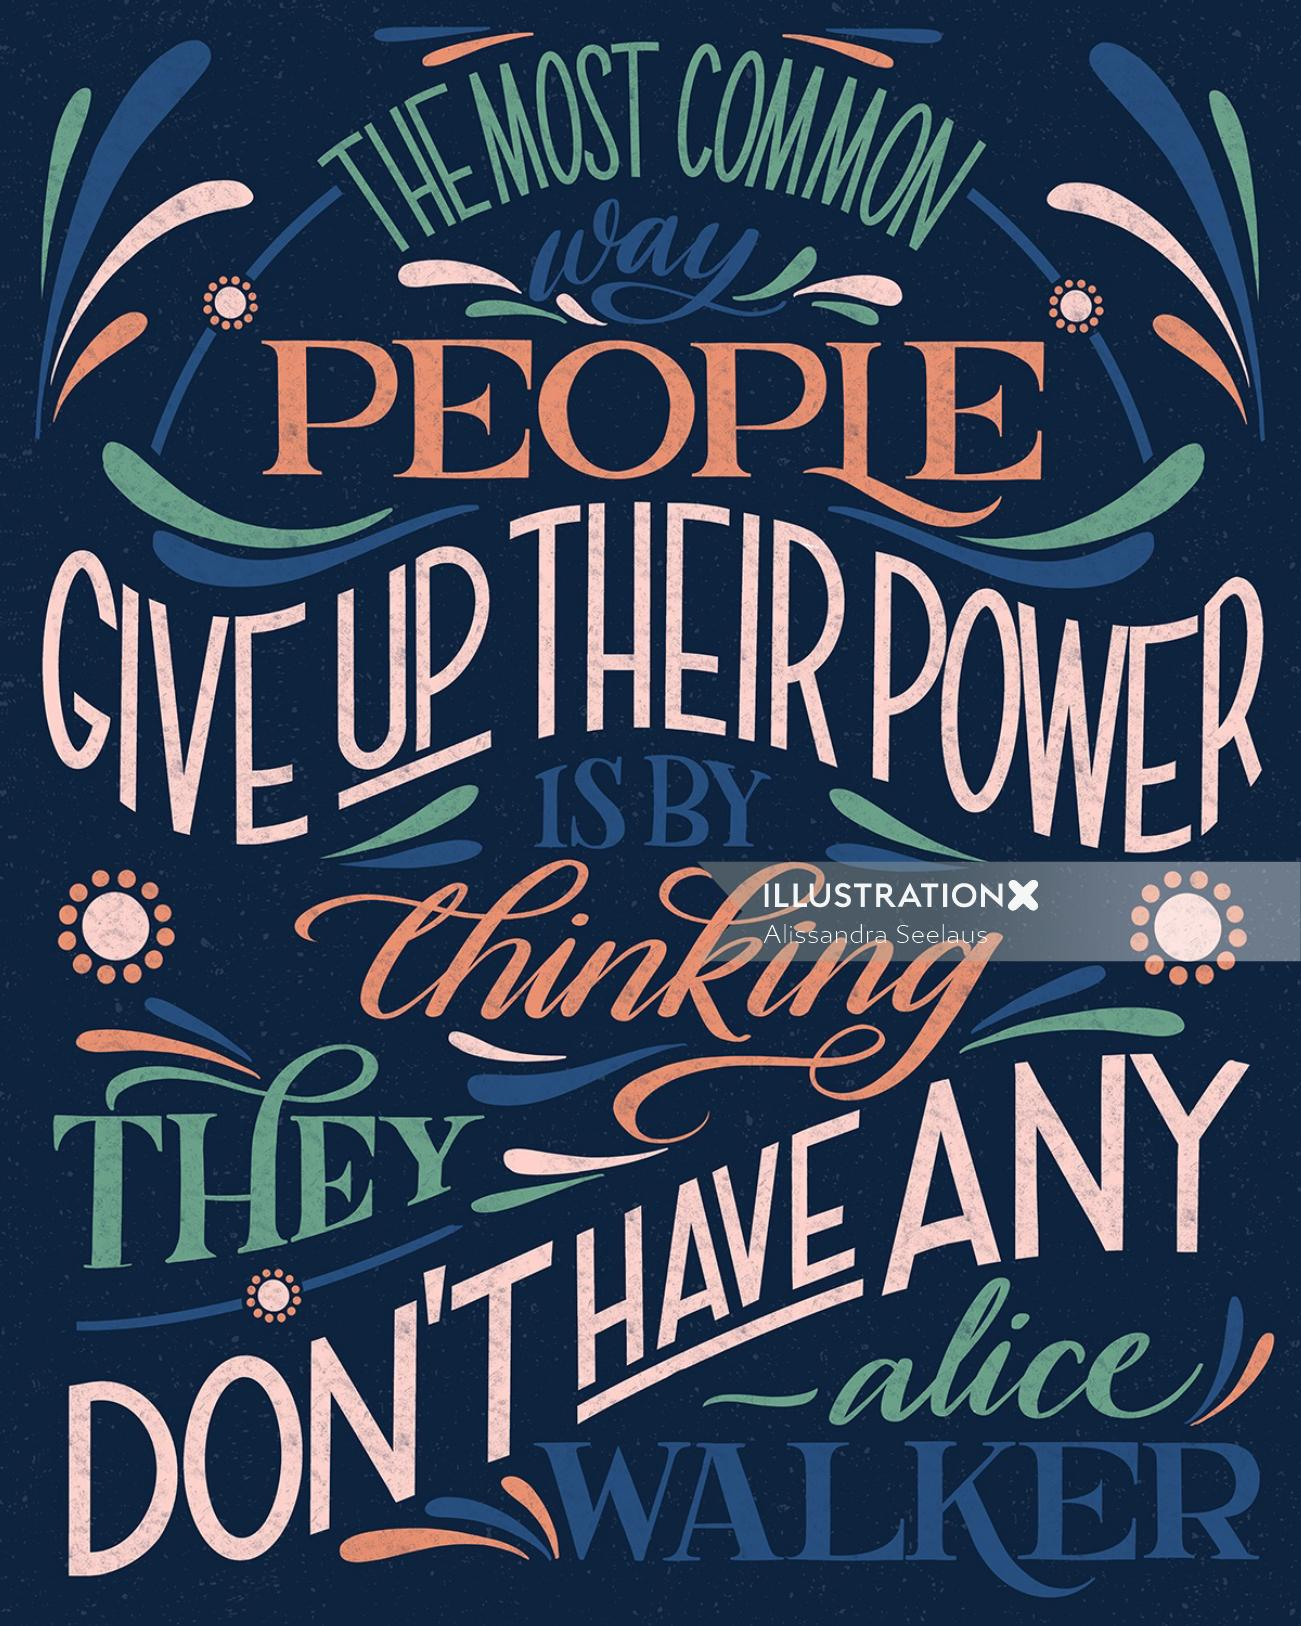 Hand lettering art for black lives movement